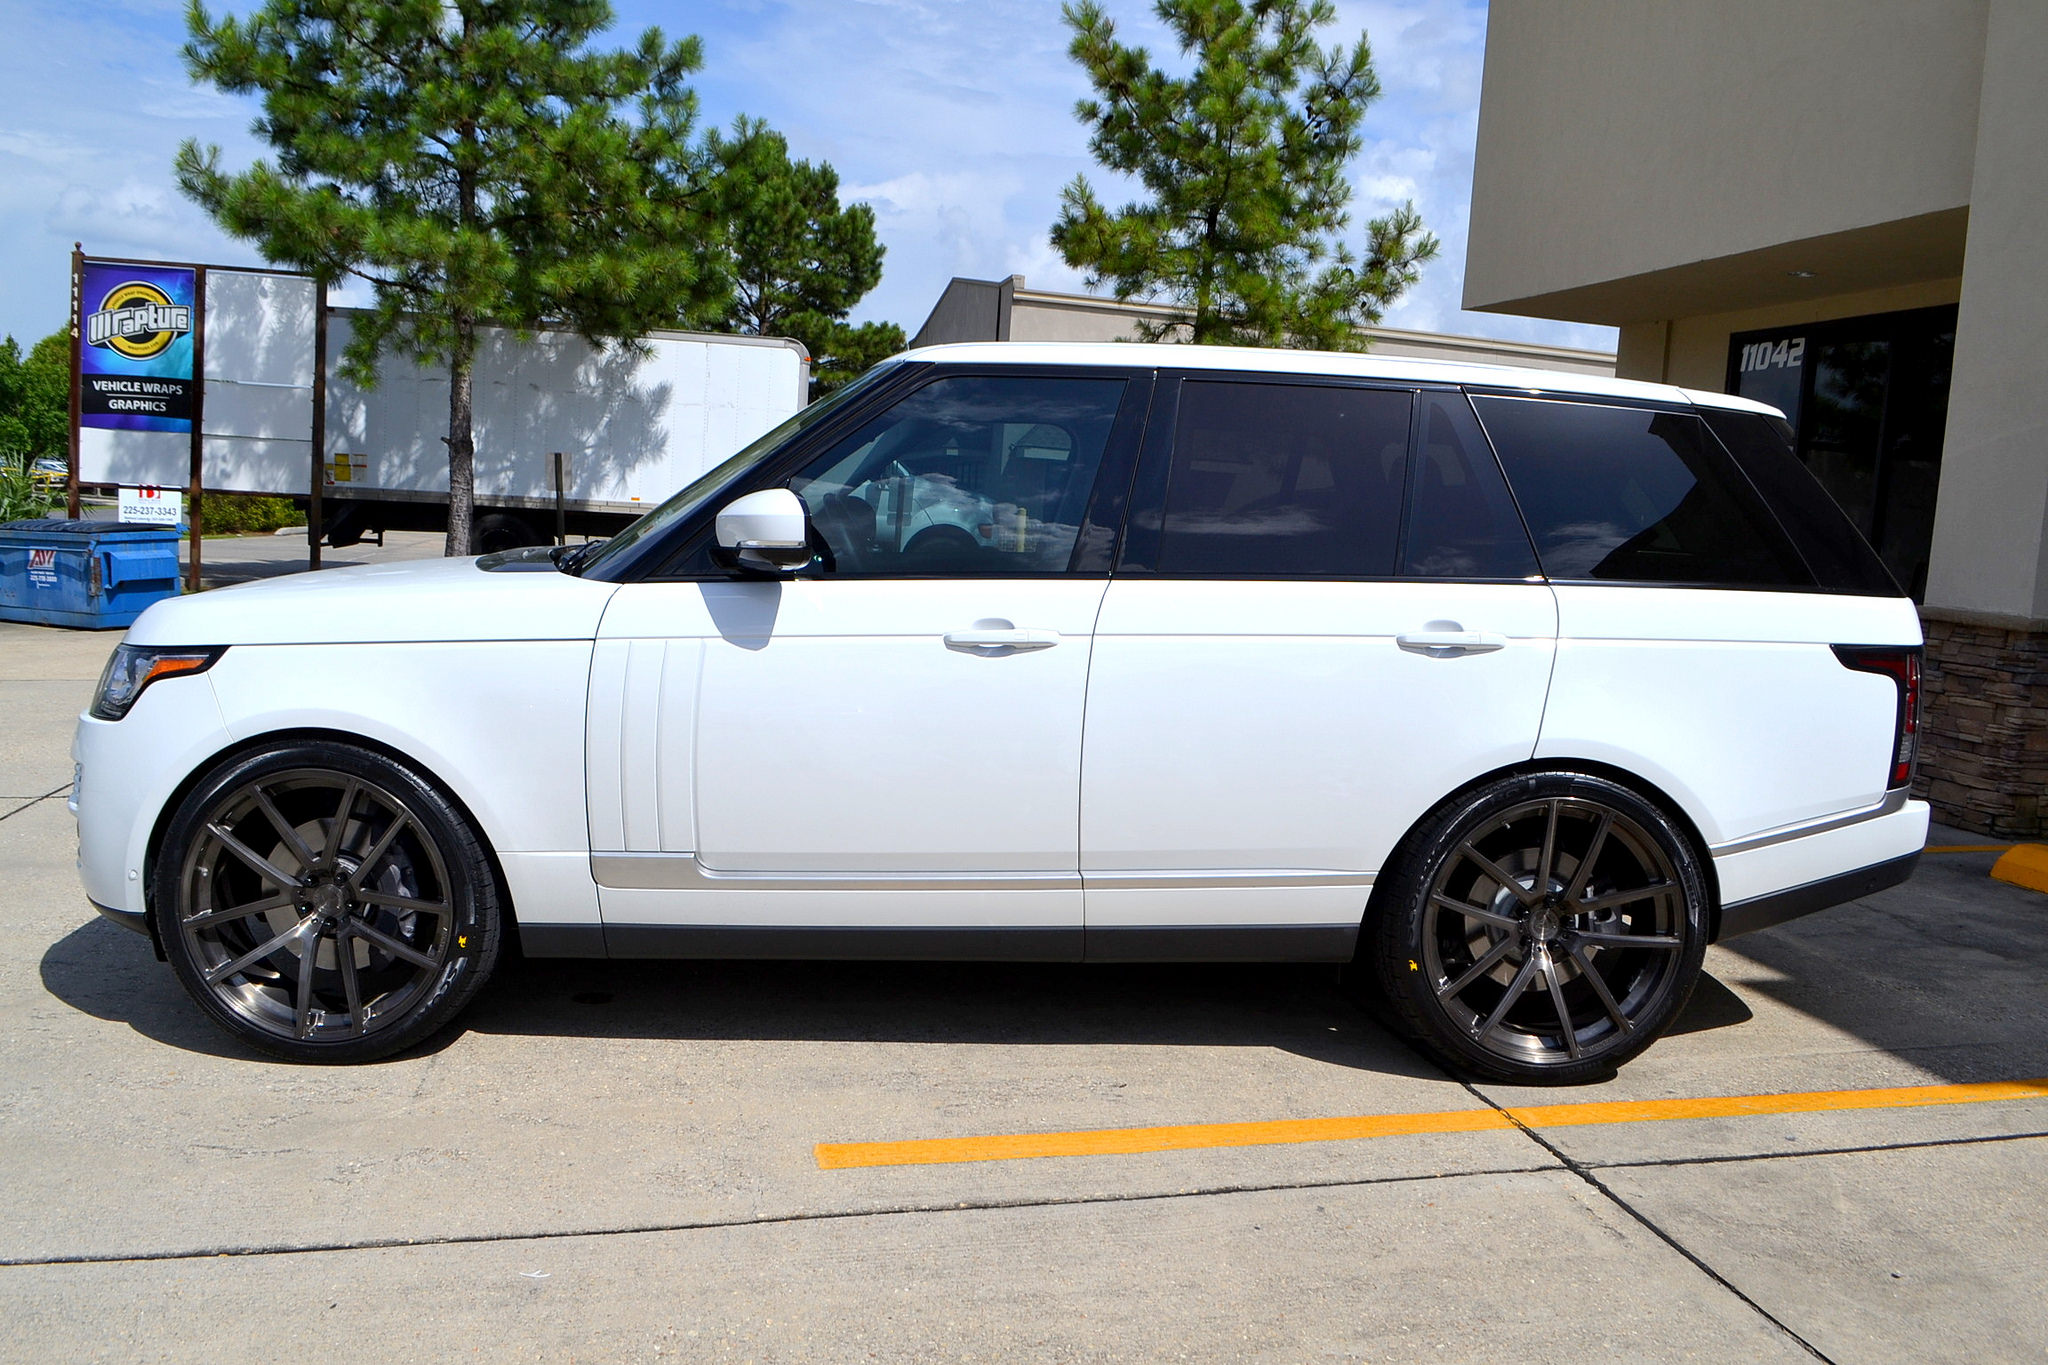 "Full Size Range Rover on 24"" Velos Solo V Forged Wheels"